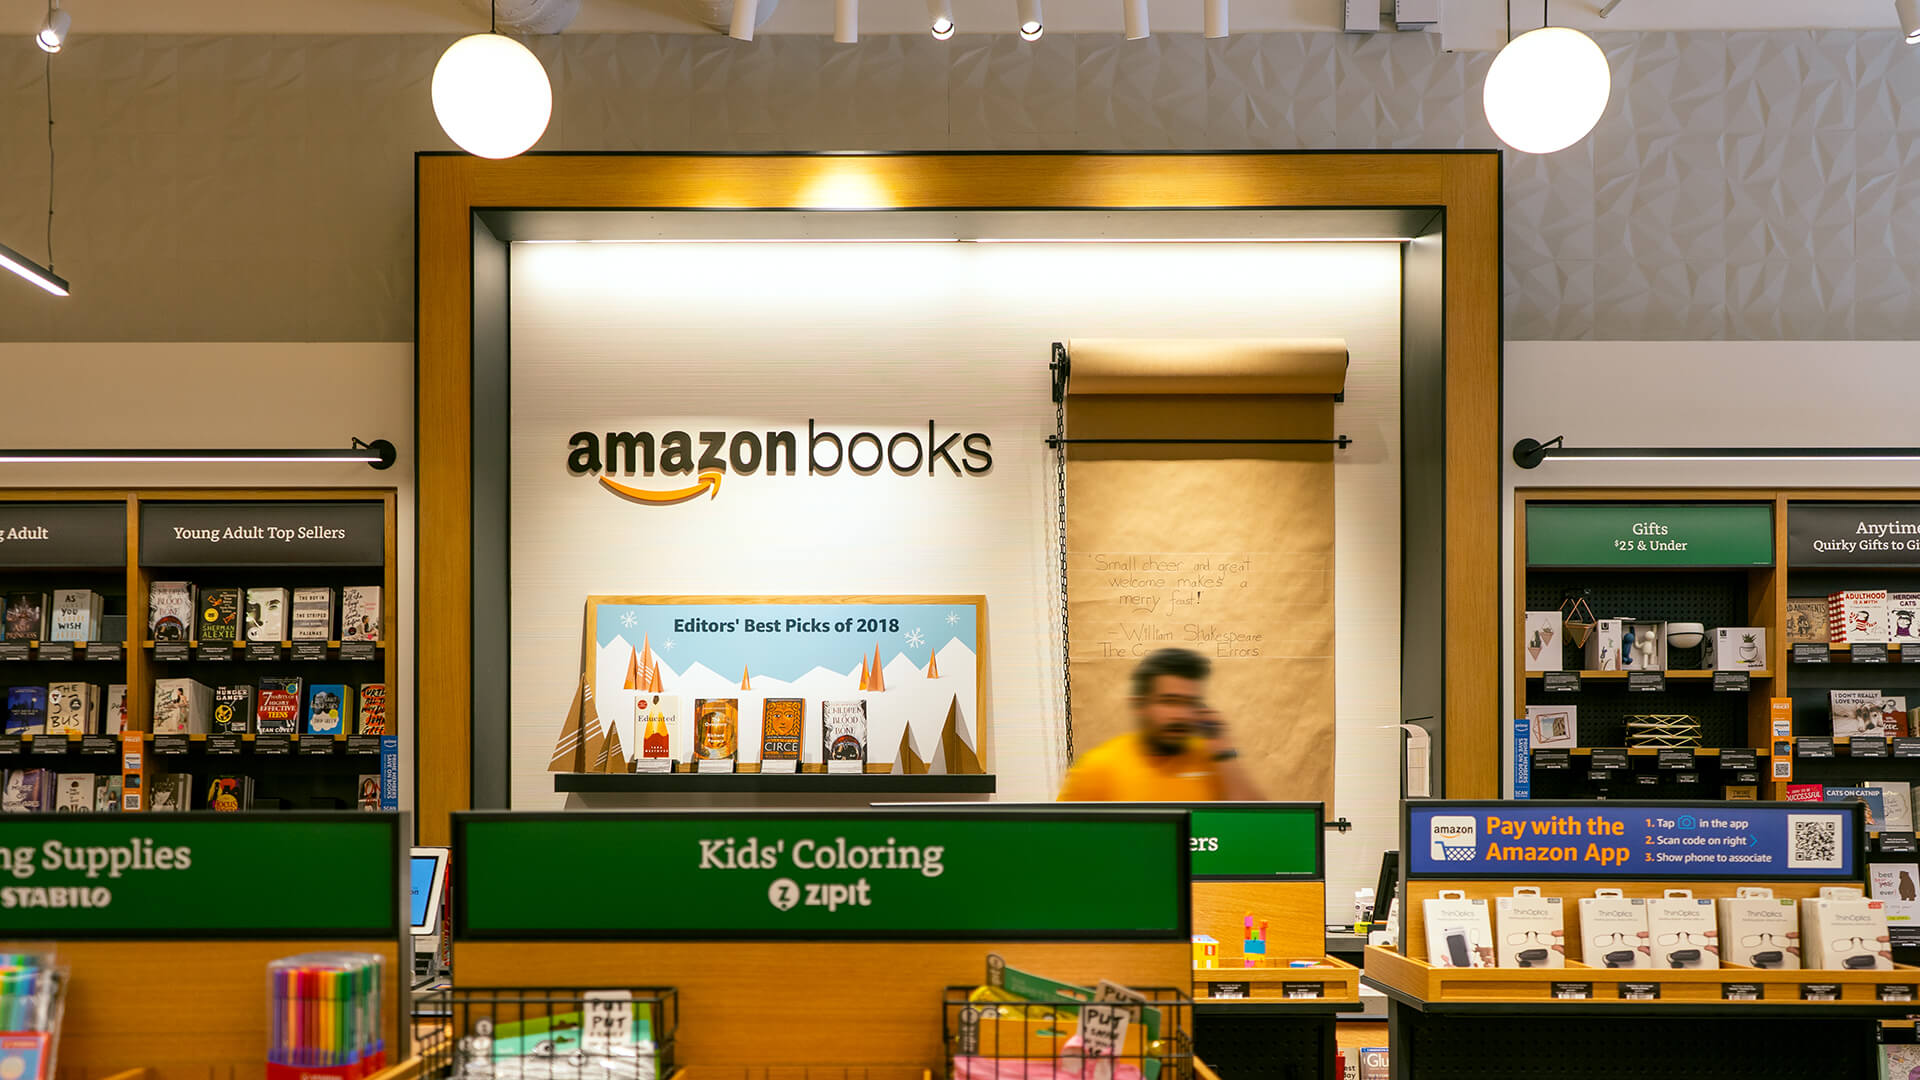 Amazon's Ease Wins Over Savings — Now Other Retailers Want a Piece of the Pie